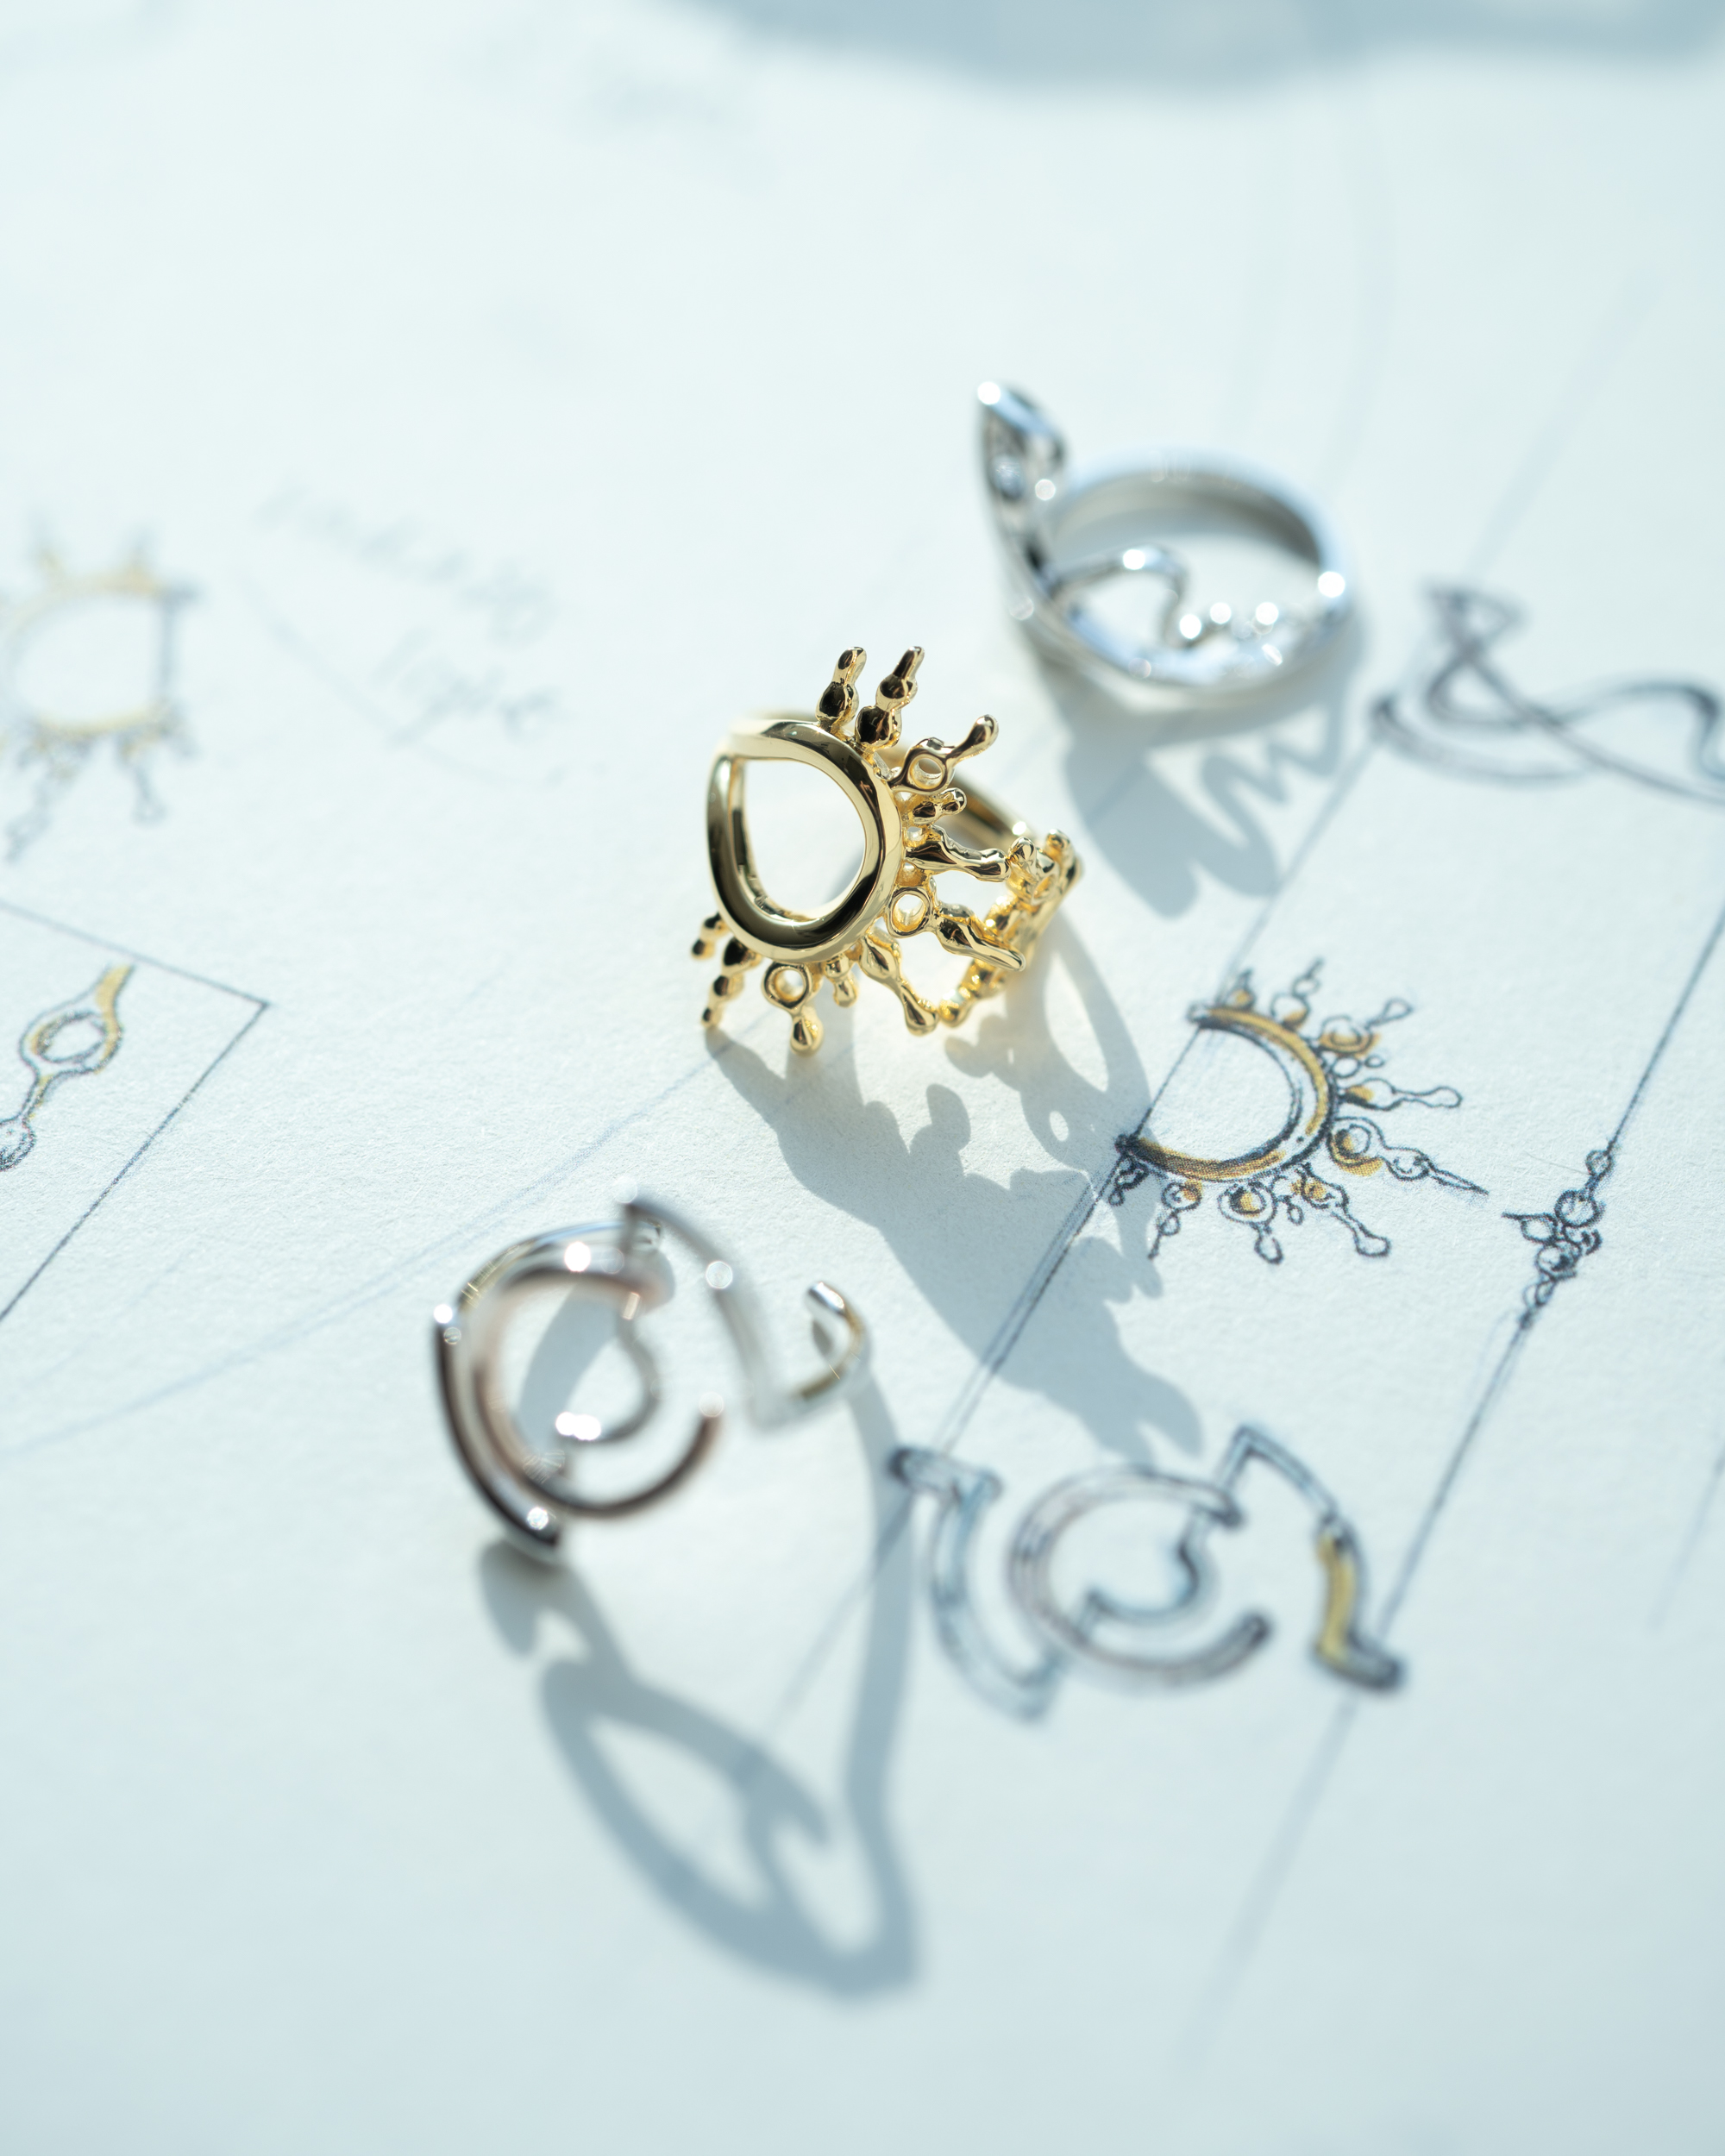 Some of GLOD's jewelry pieces can be worn in multiple ways.